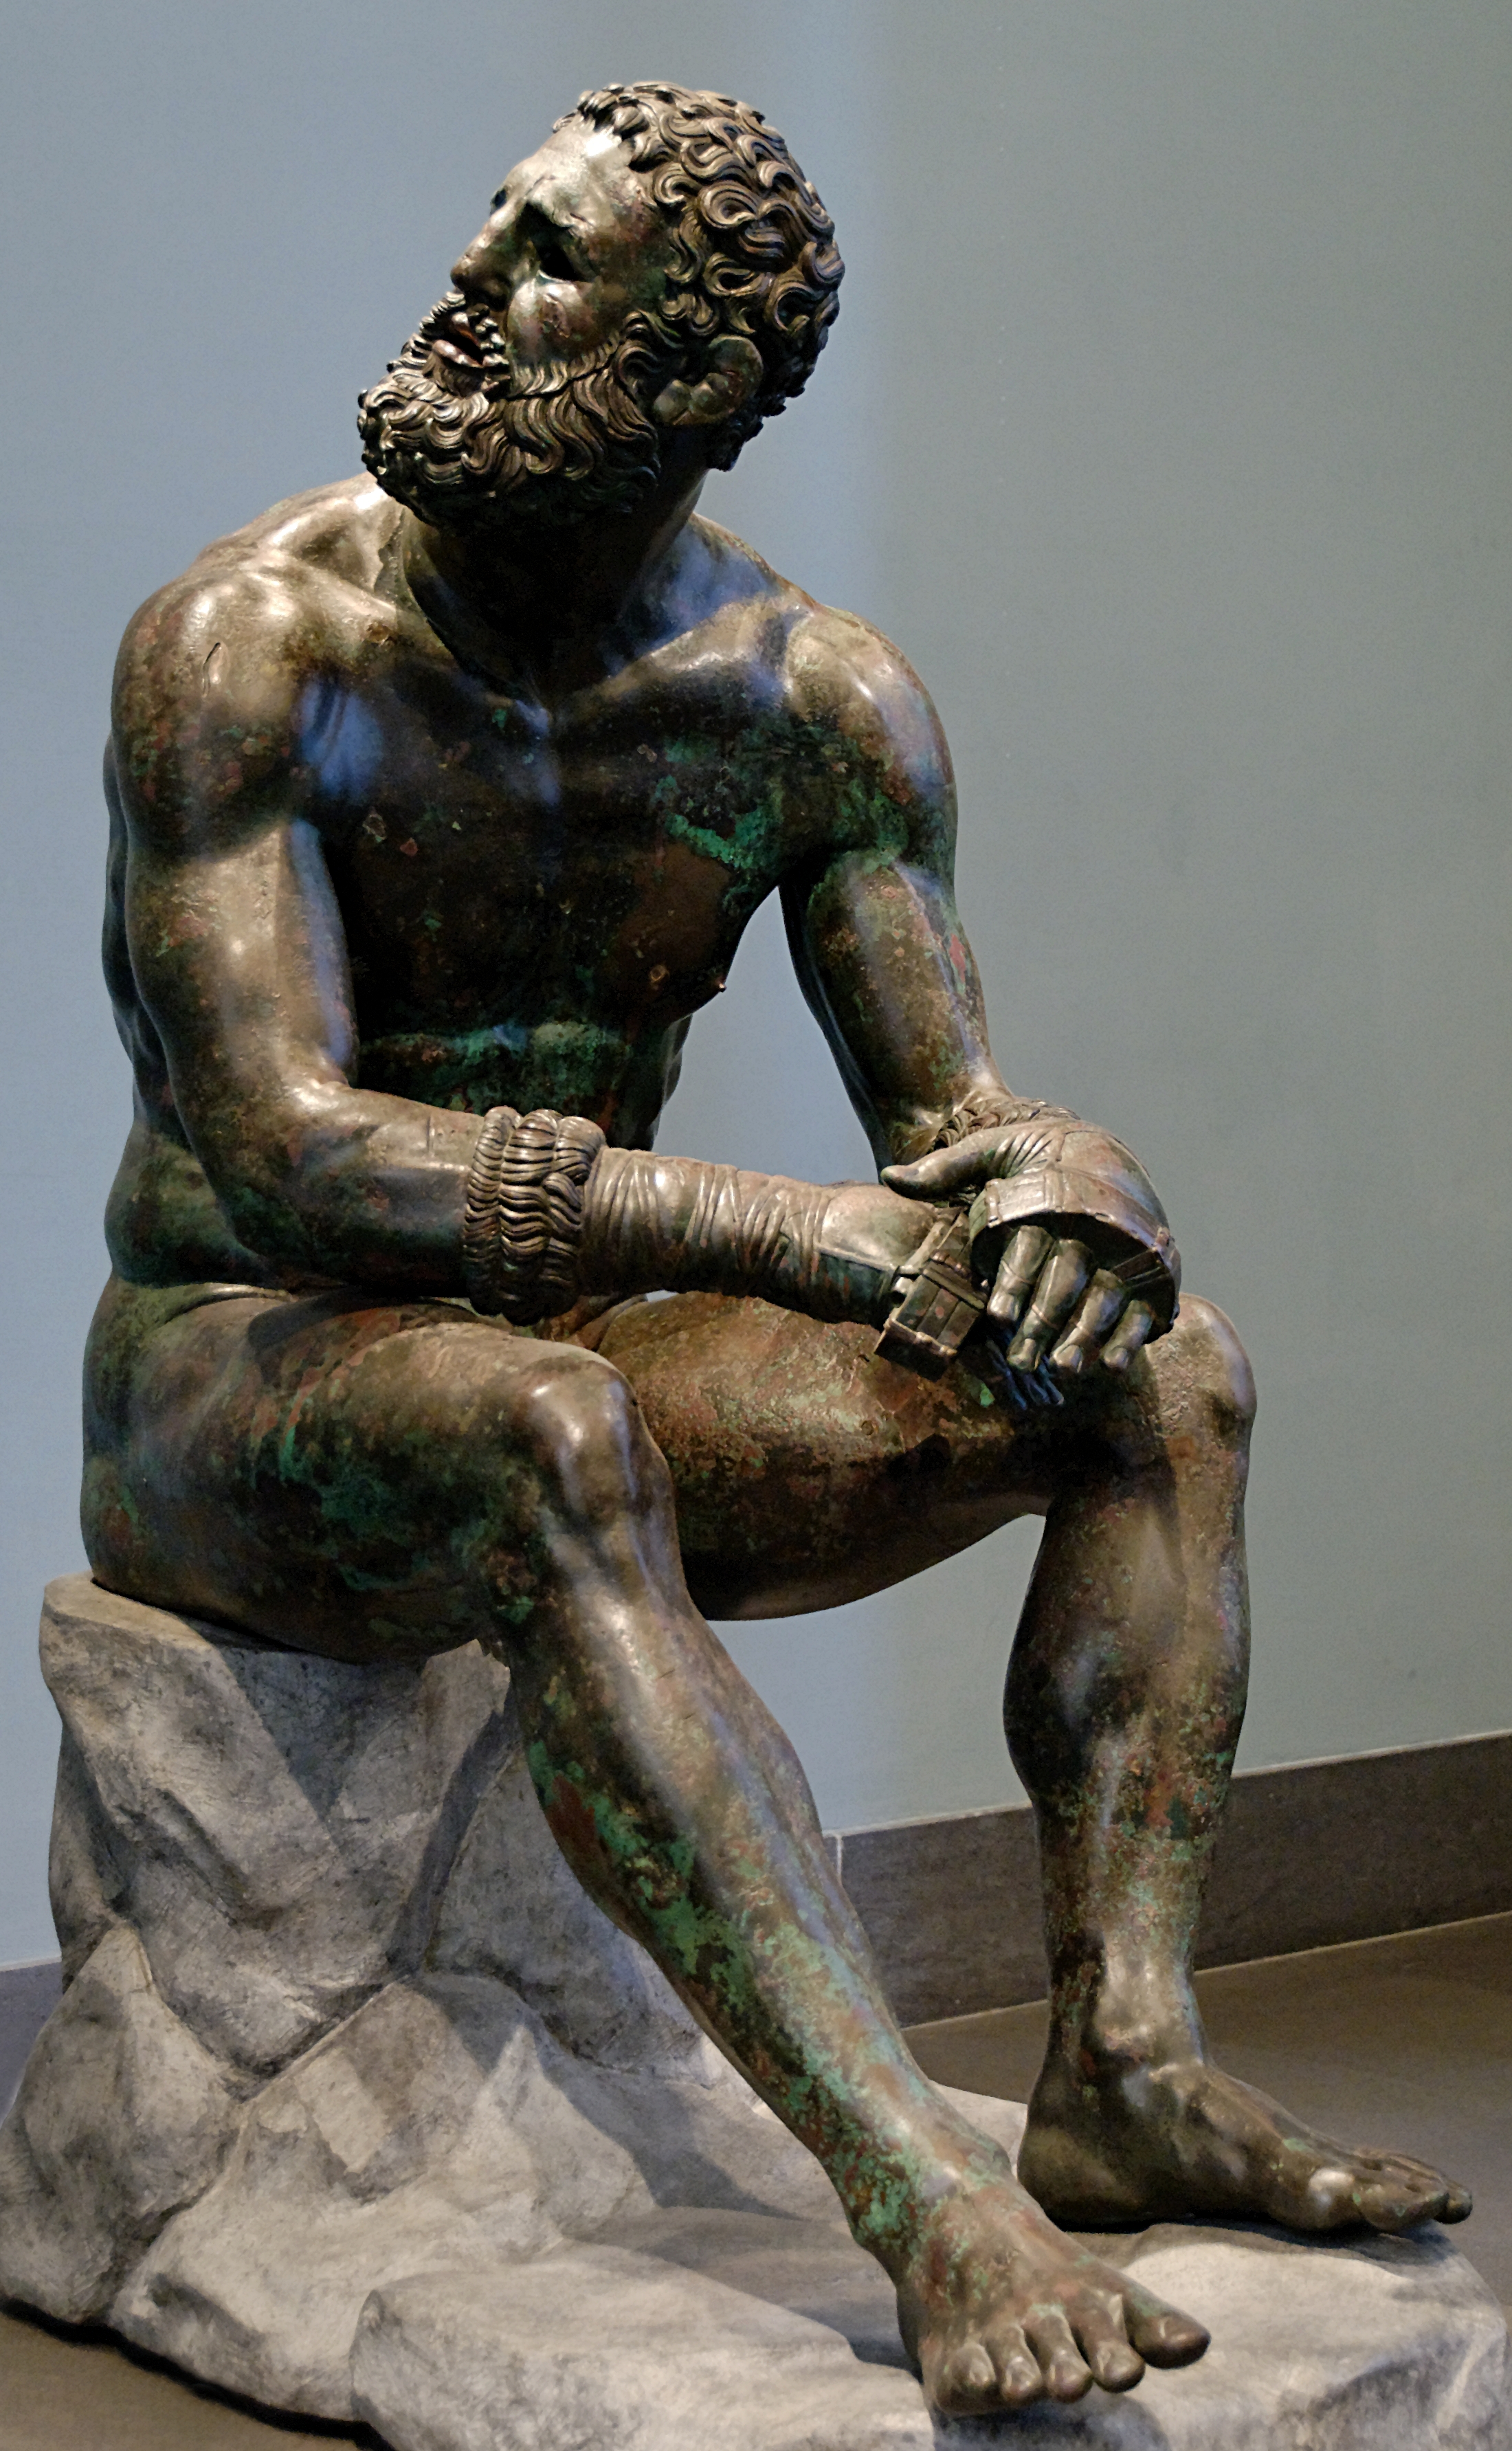 https://upload.wikimedia.org/wikipedia/commons/b/bb/Thermae_boxer_Massimo_Inv1055.jpg